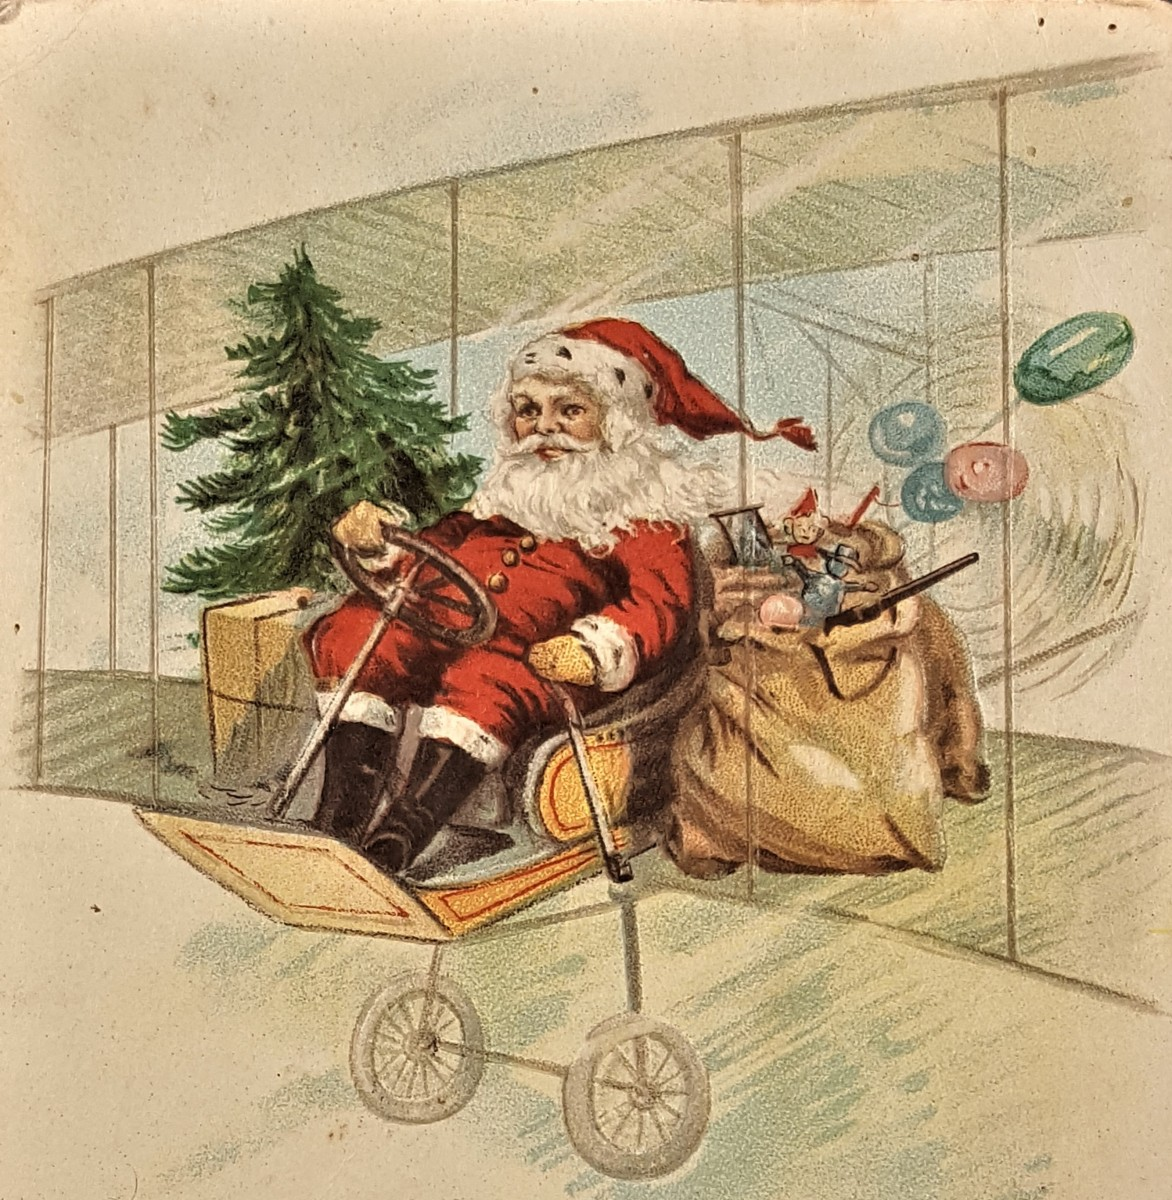 The Evolution of Christmas: Santa Claus from 1900-1920 ...